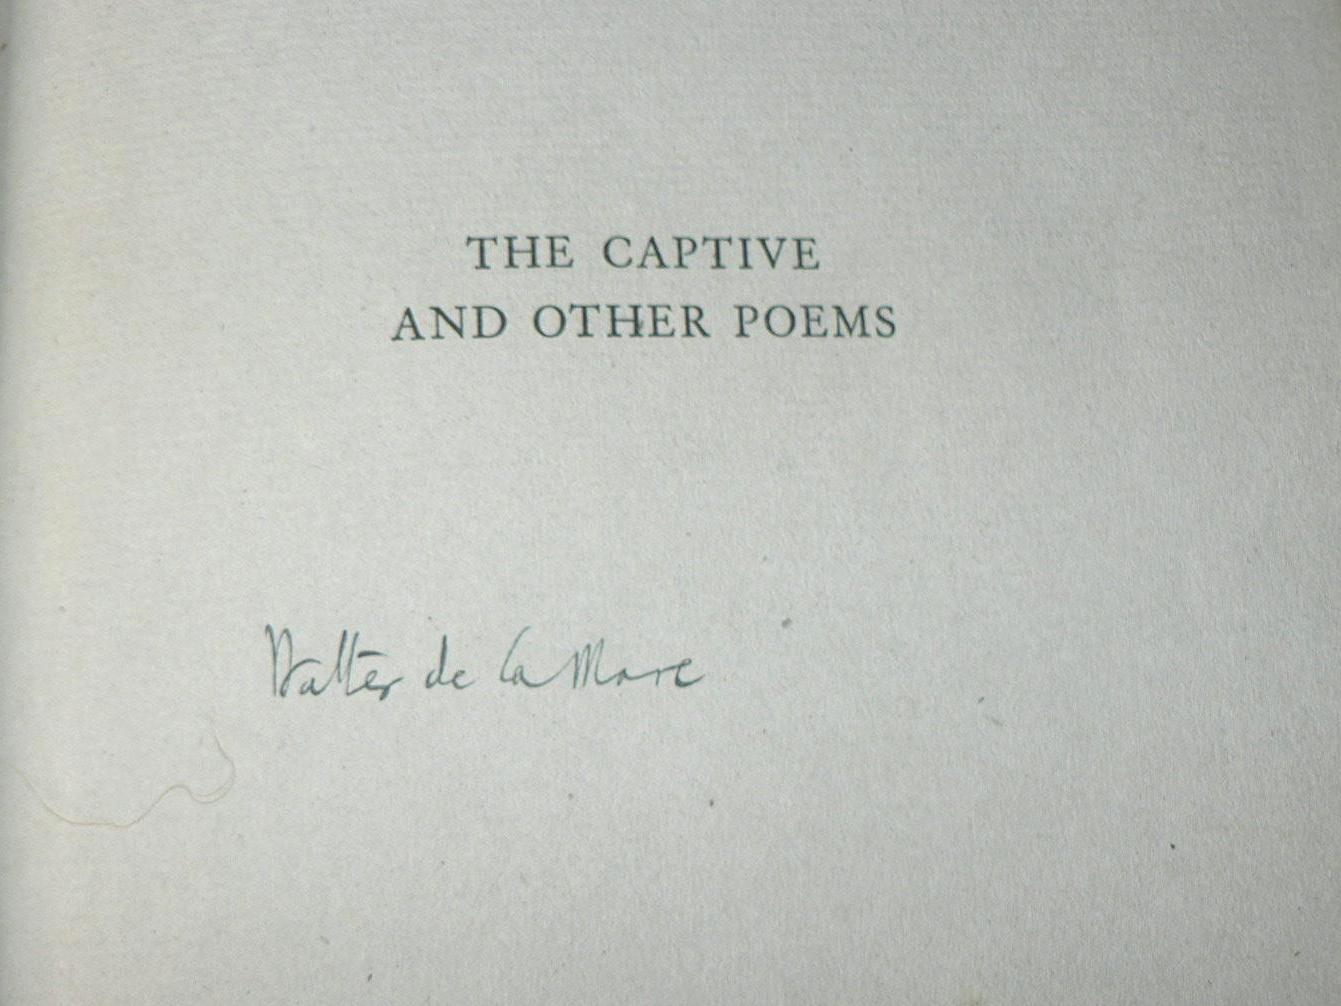 The Captive and Other Poems